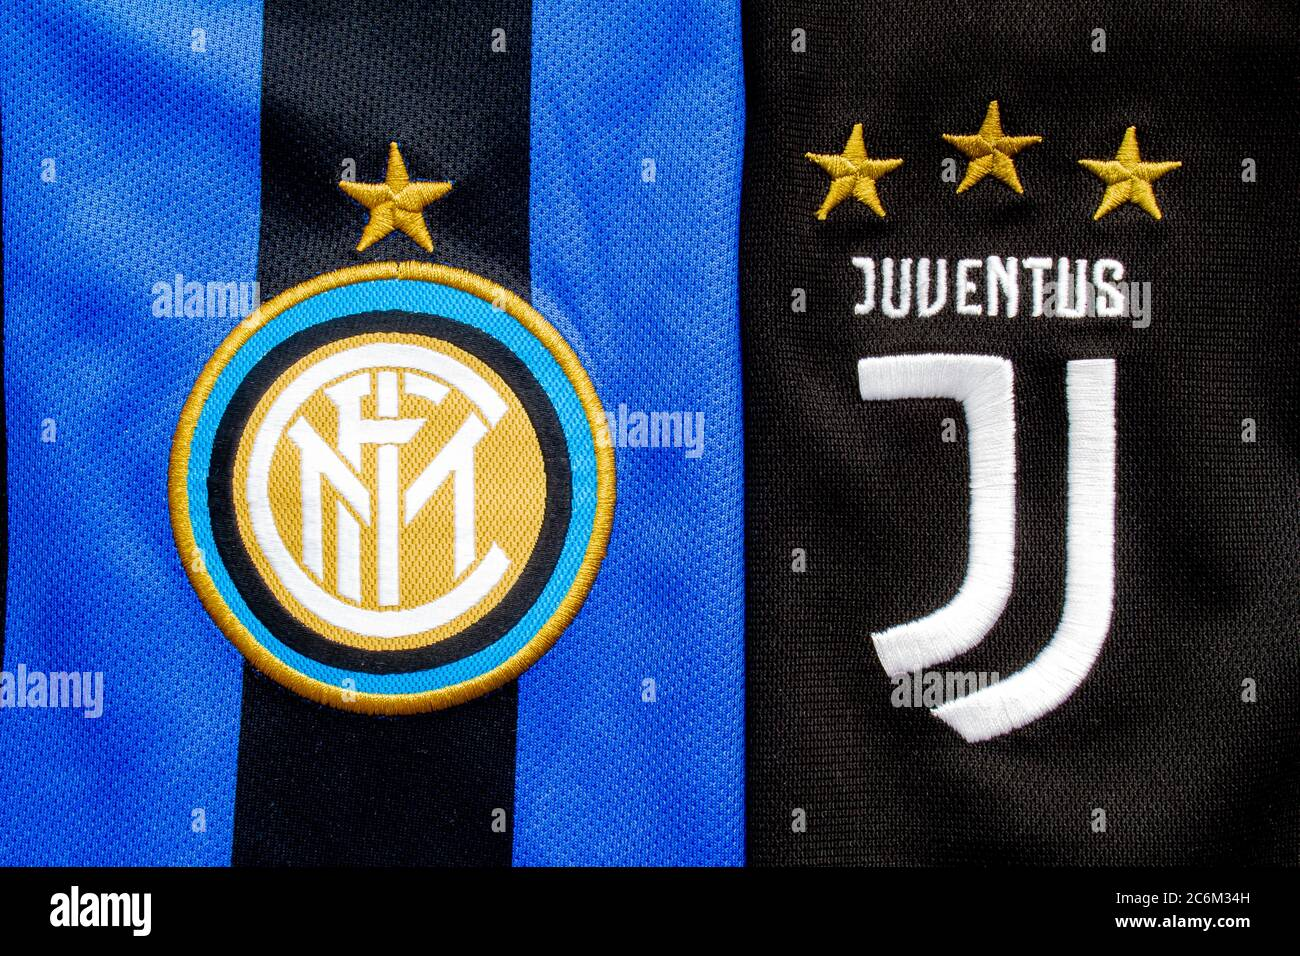 juventus logo high resolution stock photography and images alamy https www alamy com calgary alberta canada july 10 2020 juventus fc vs inter milan close up to their jersey logo image365547185 html